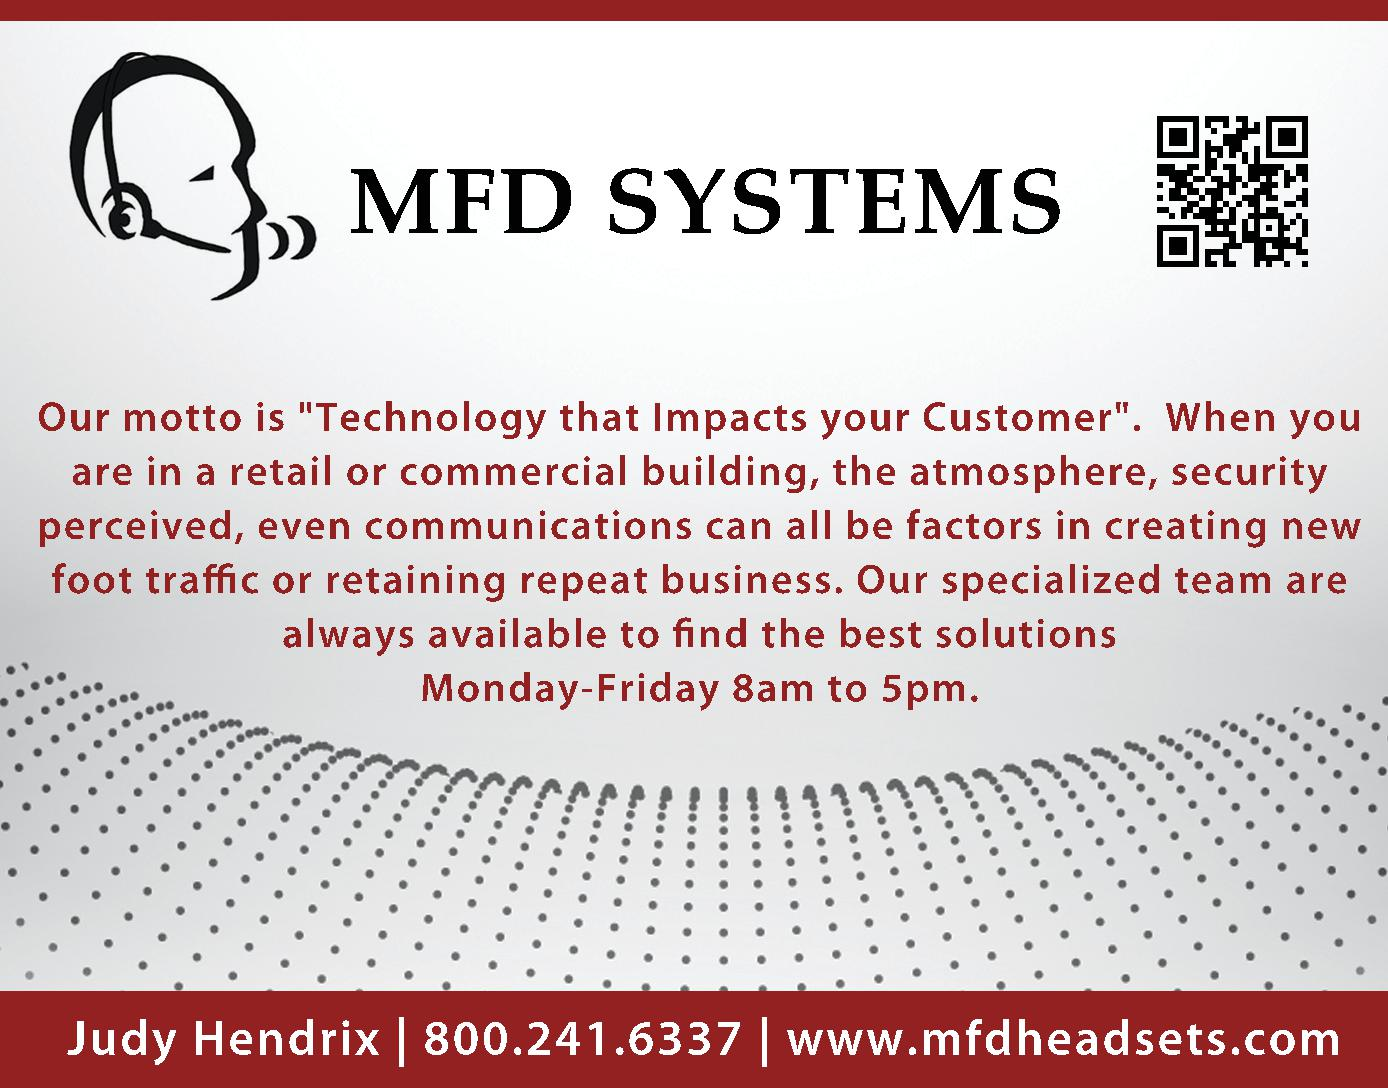 MFD Systems